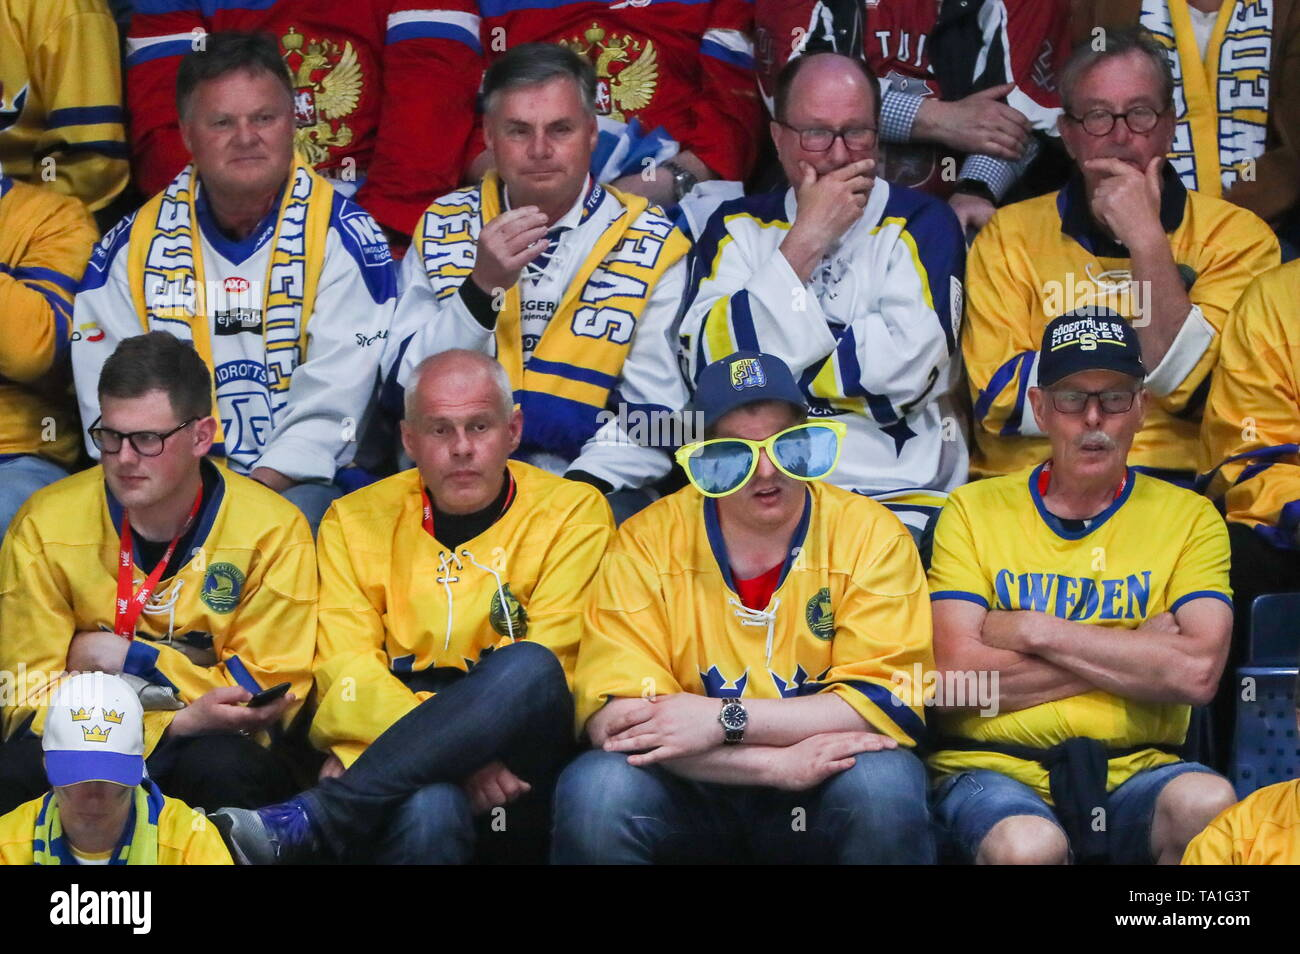 Bratislava, Slovakia. 21st May, 2019. BRATISLAVA, SLOVAKIA - MAY 21, 2019: Swedish fans during the 2019 IIHF Ice Hockey World Championship Preliminary Round Group B match between Sweden and Russia at Ondrej Nepela Arena. Alexander Demianchuk/TASS Credit: ITAR-TASS News Agency/Alamy Live News Stock Photo